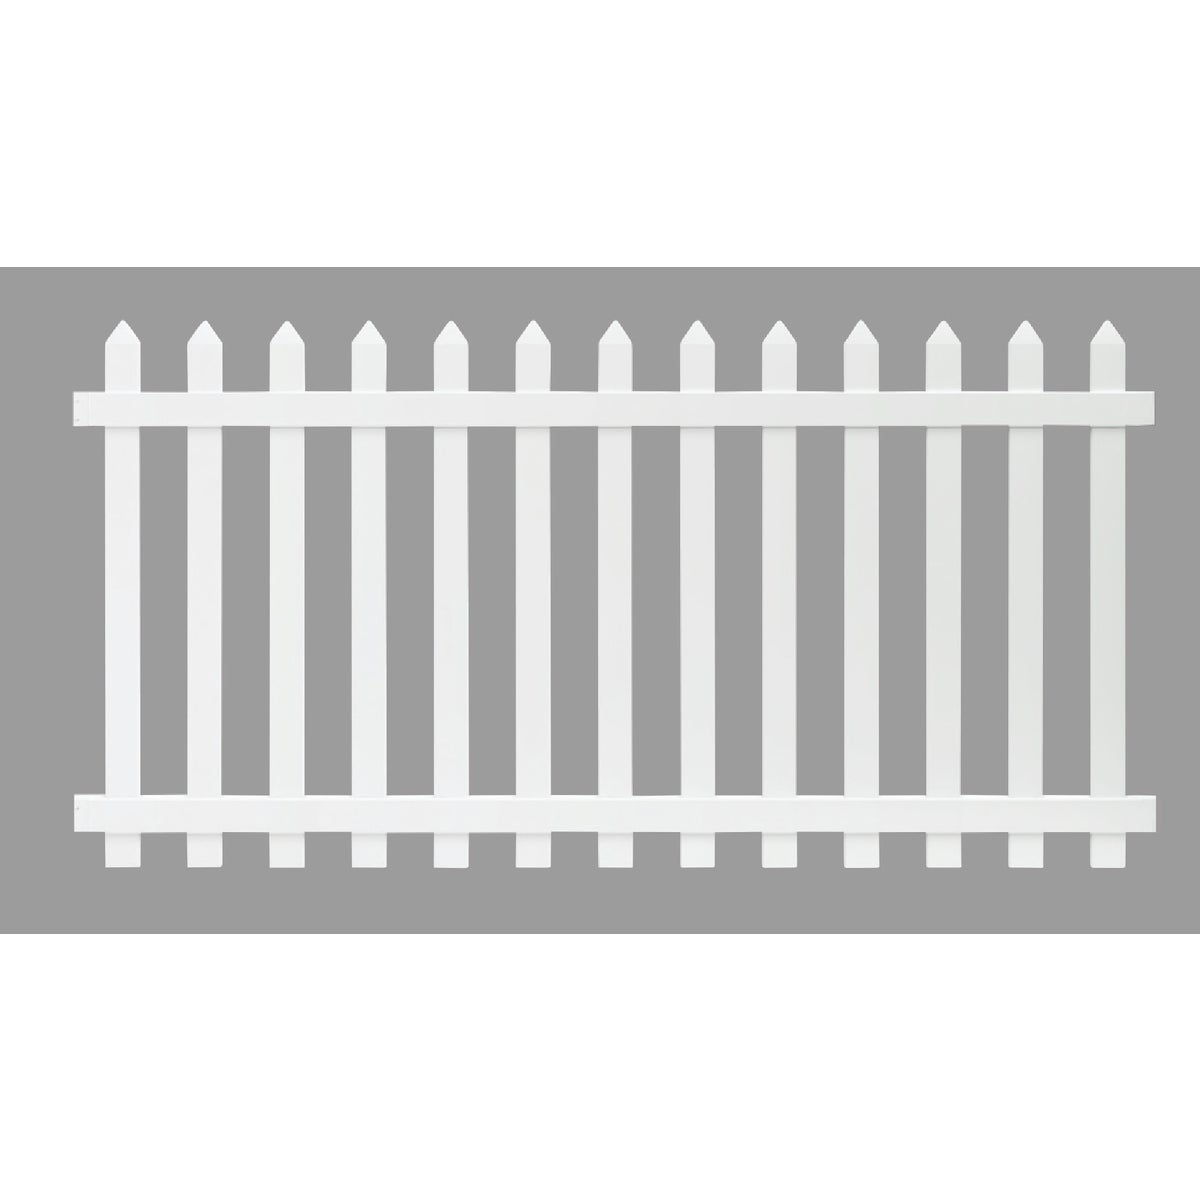 4X8 WH VNYL PICKET FENCE - 128004 by Ufpi Lbr & Treated